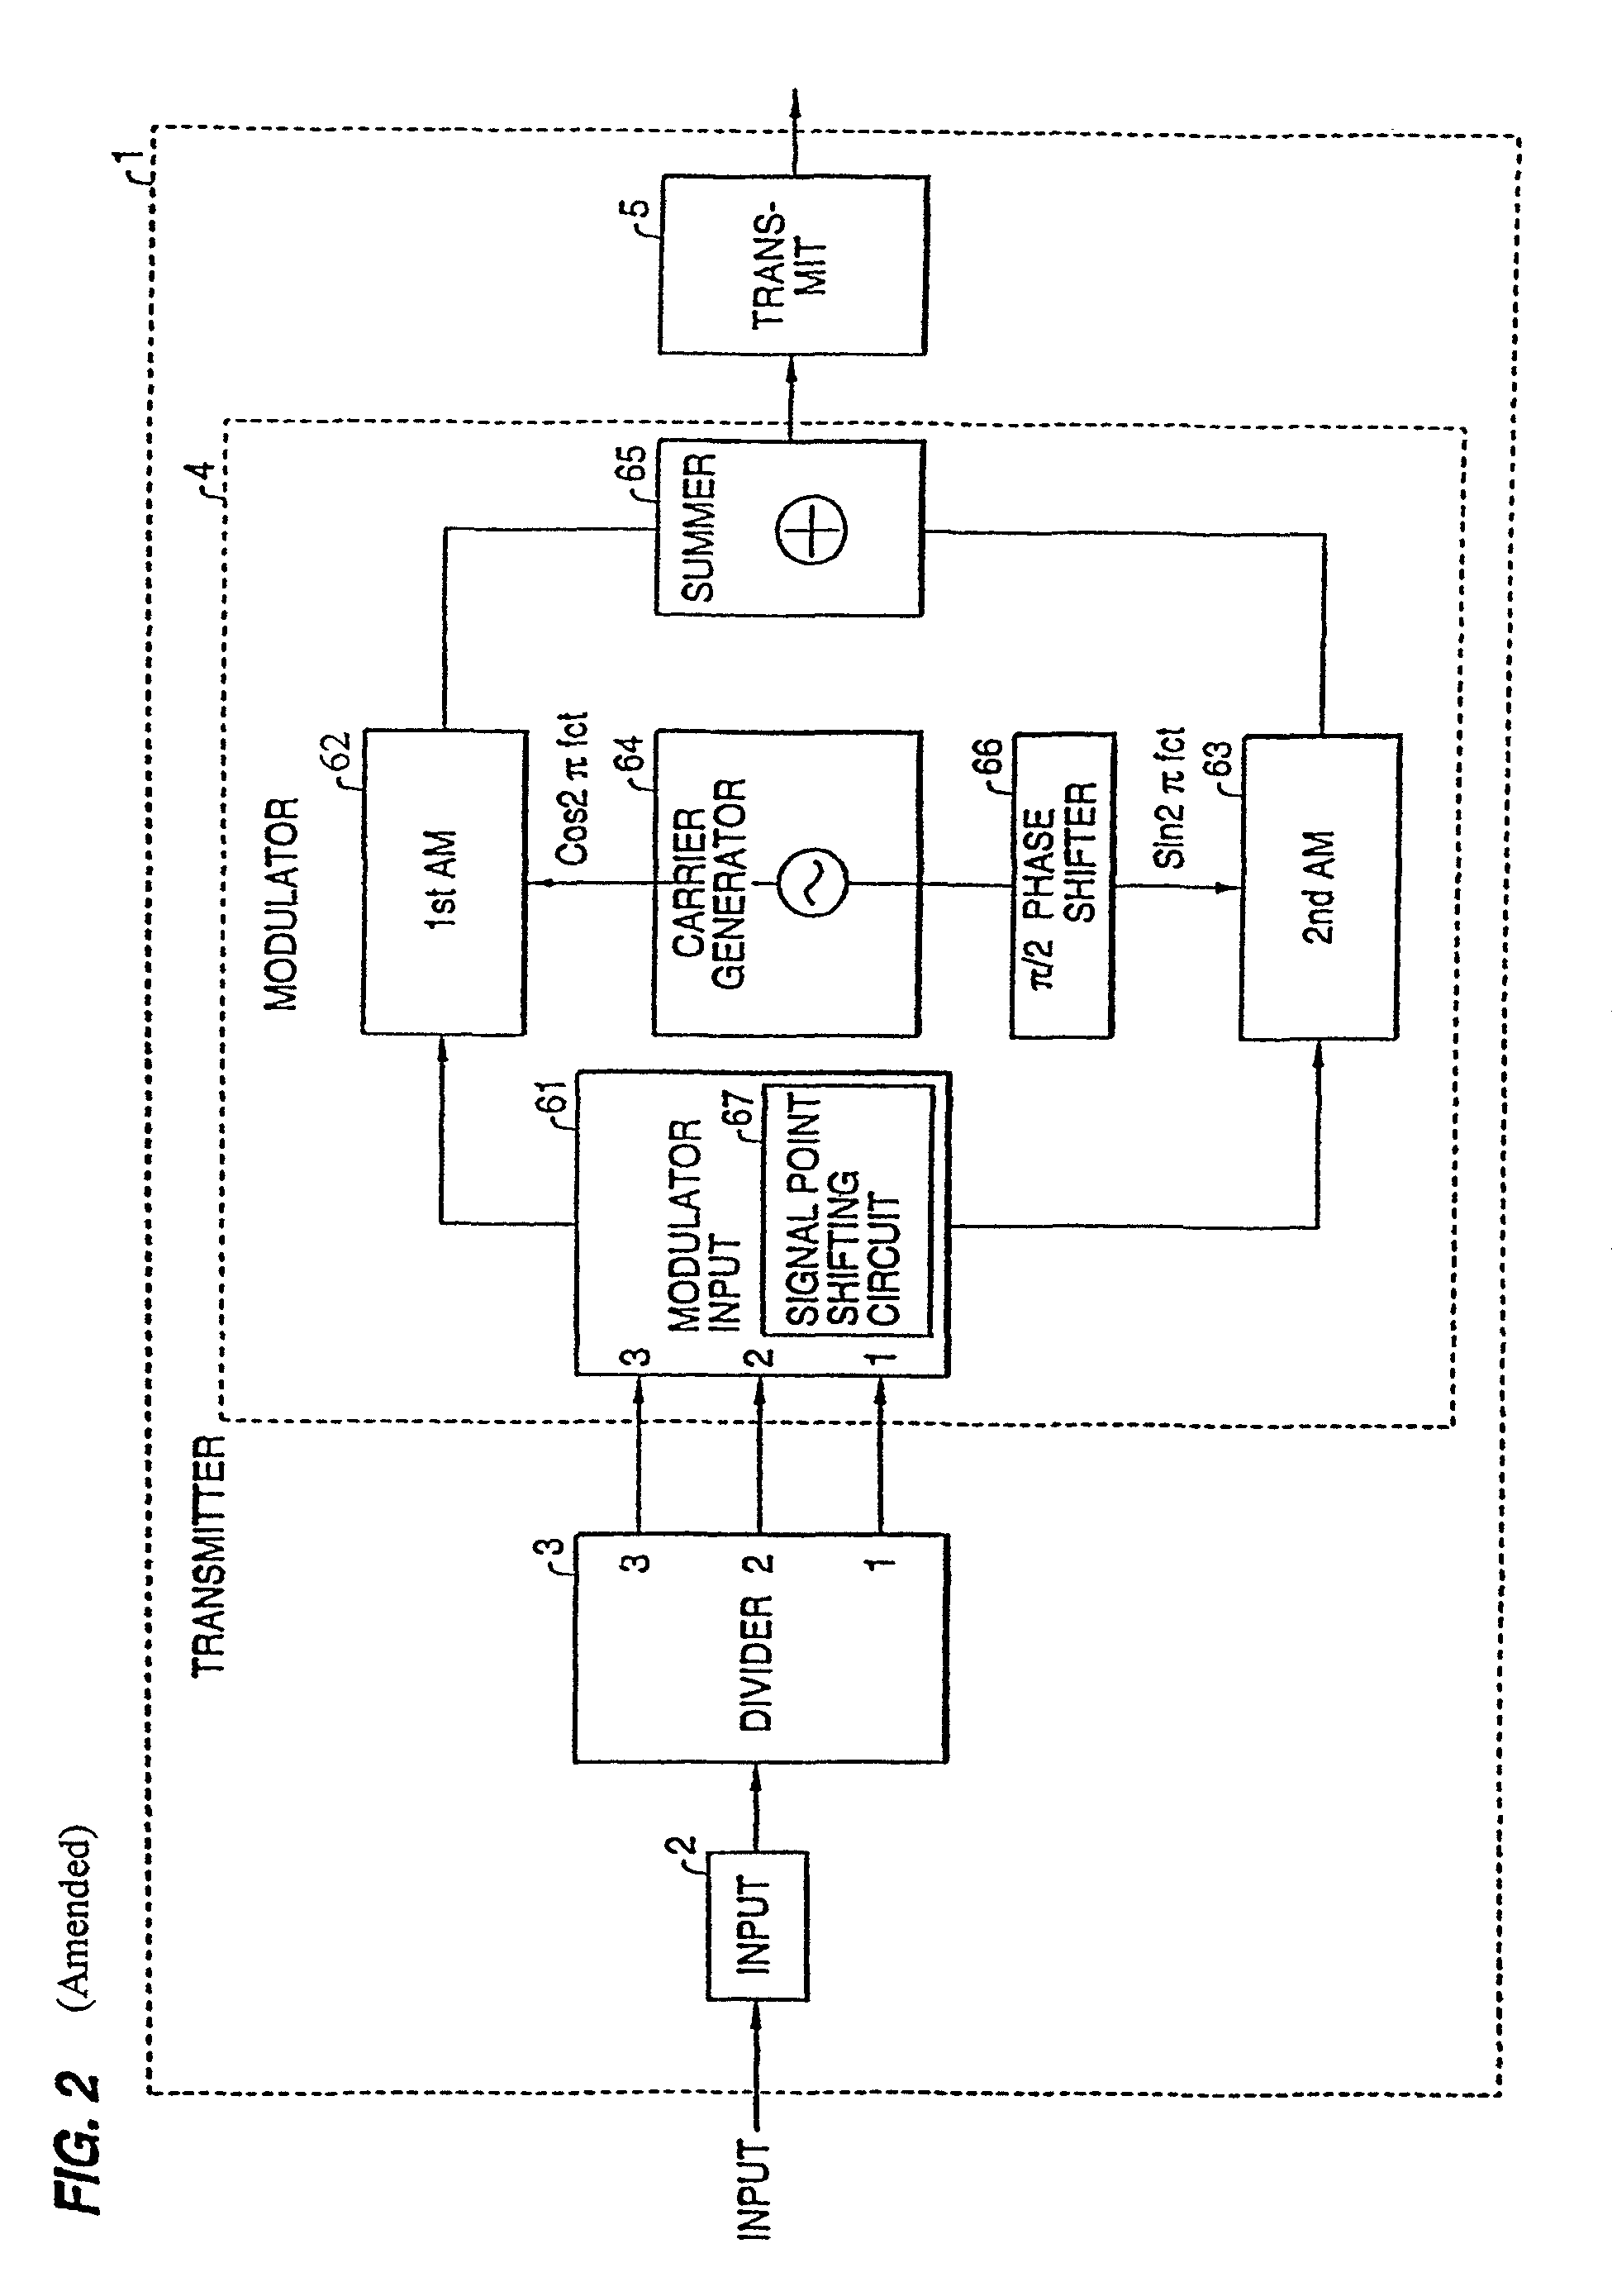 Patent Re42643e1 Fig 2nd Simple Telephone Hybrid Circuit Images